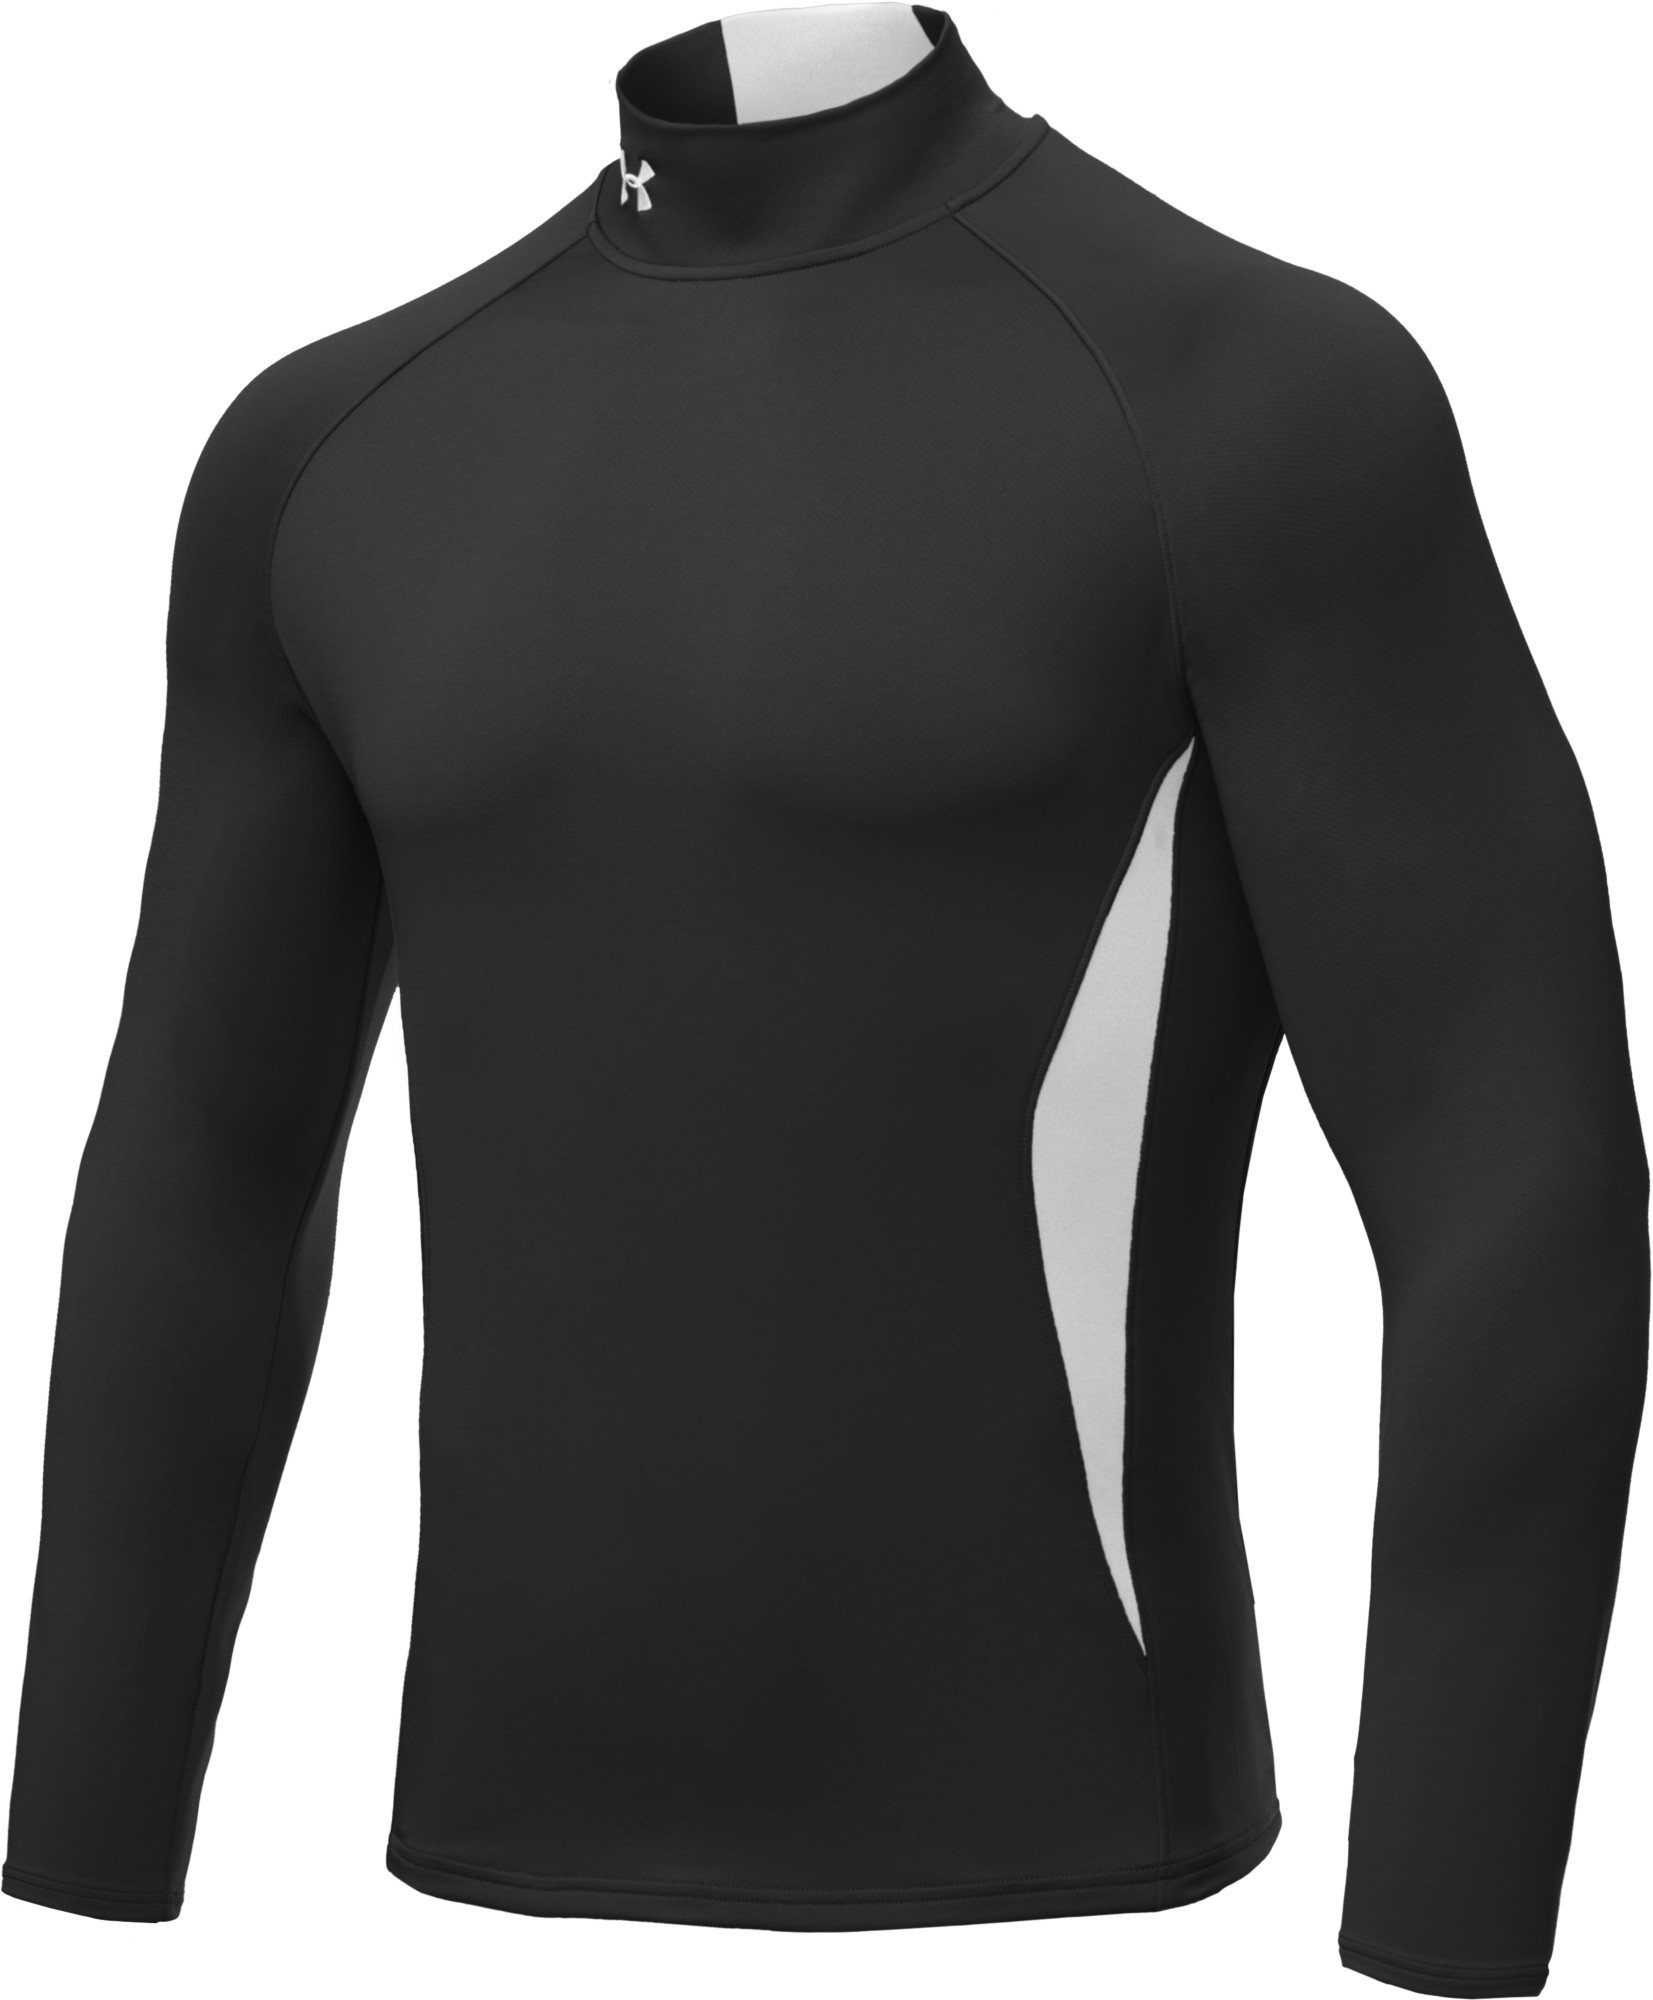 photo: Under Armour Fitted ColdGear Mock base layer top